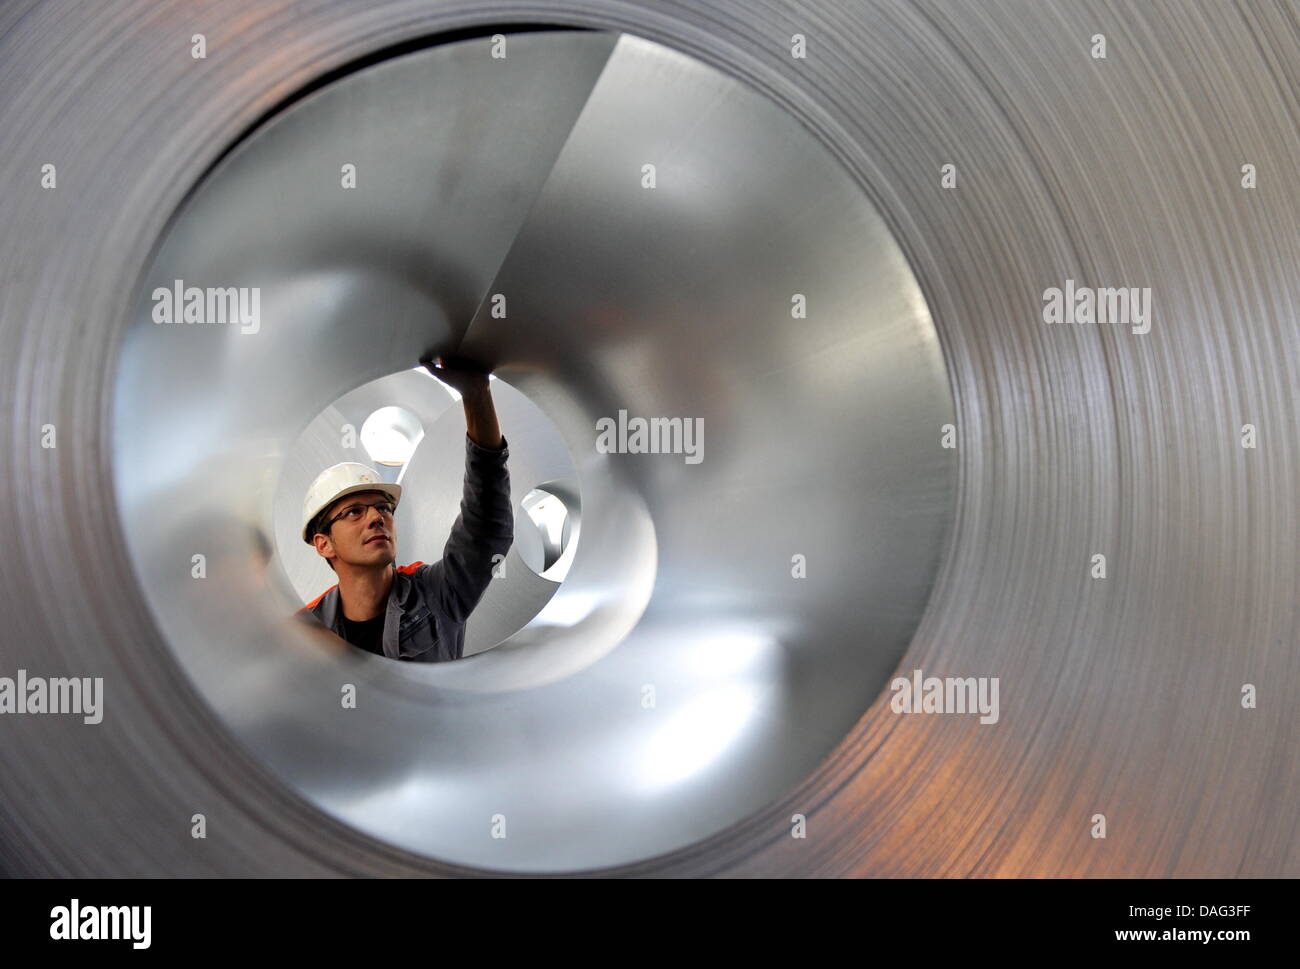 A file picture taken on 15 September 2010 shows a worker at a steel plant in Salzgitter, Germany, 15 September 2011. - Stock Image